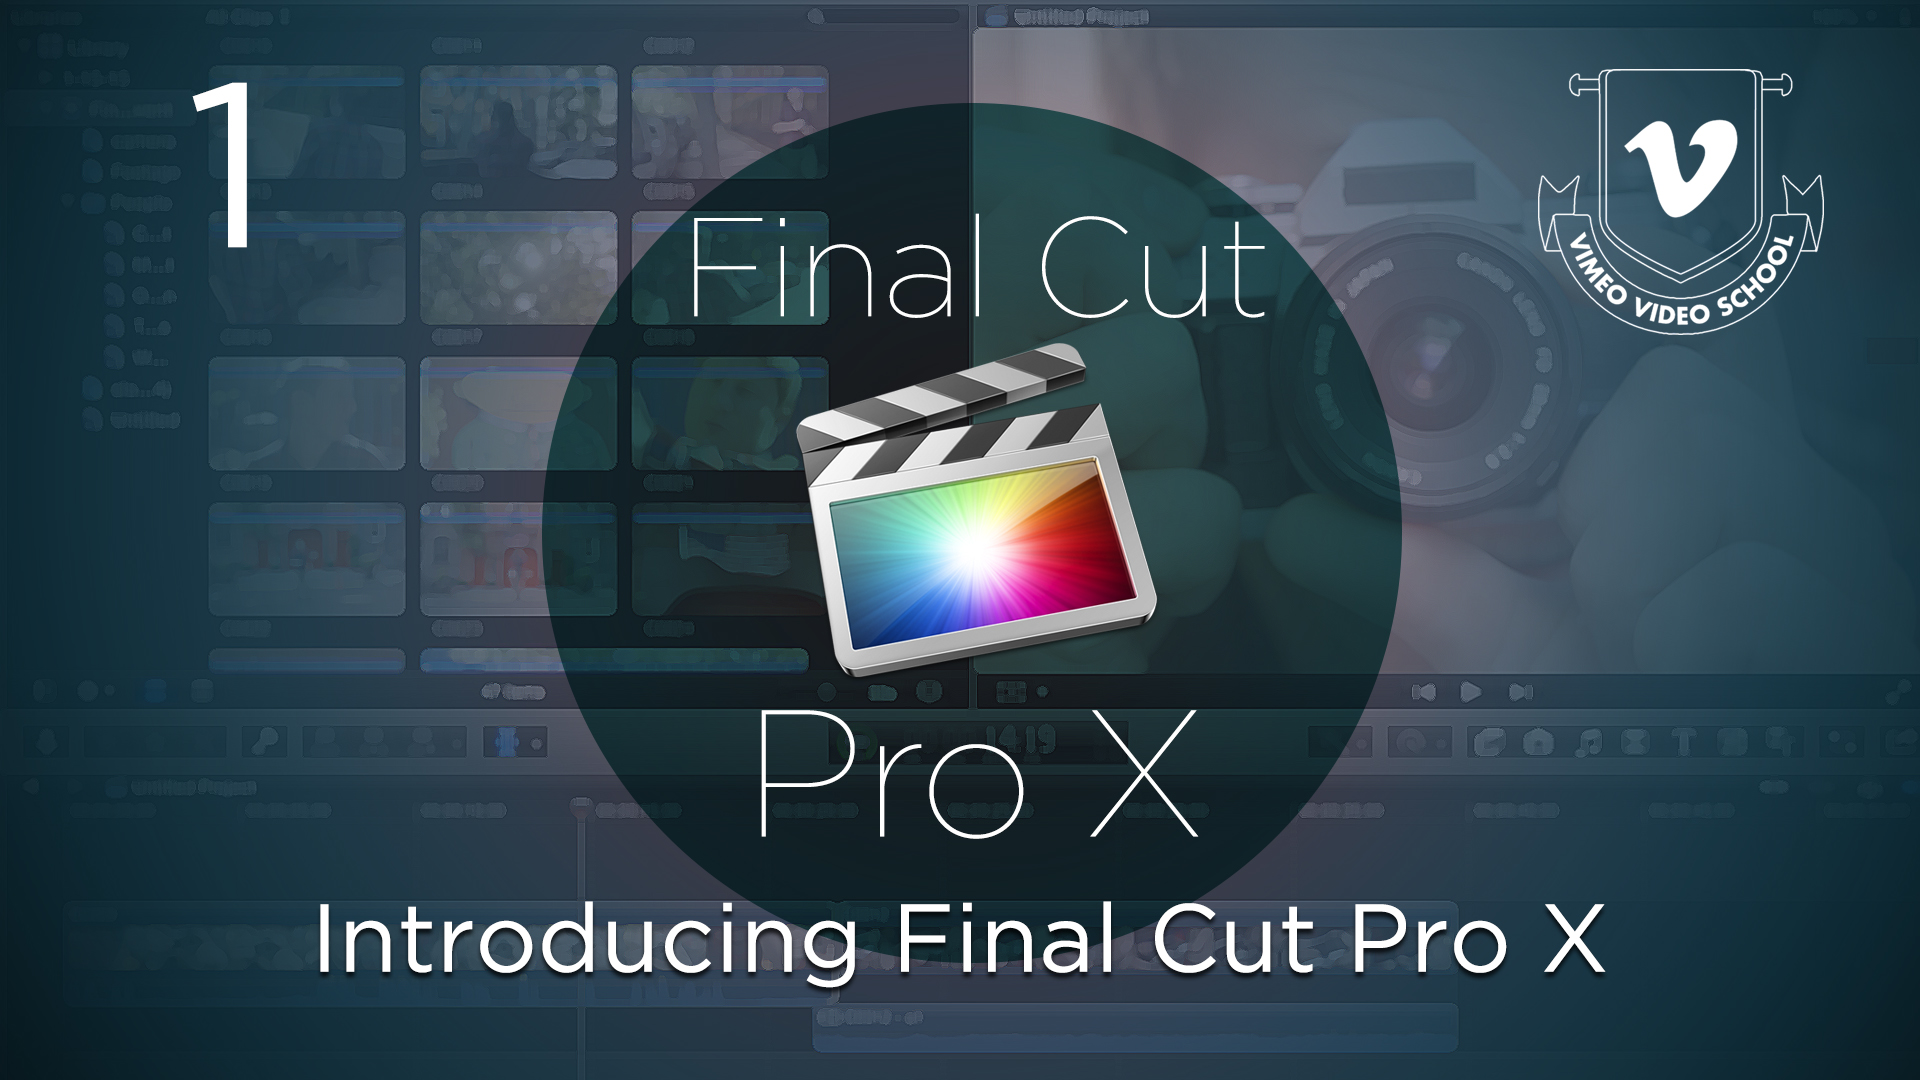 Ep  1: Introducing Final Cut Pro X - Vimeo Blog